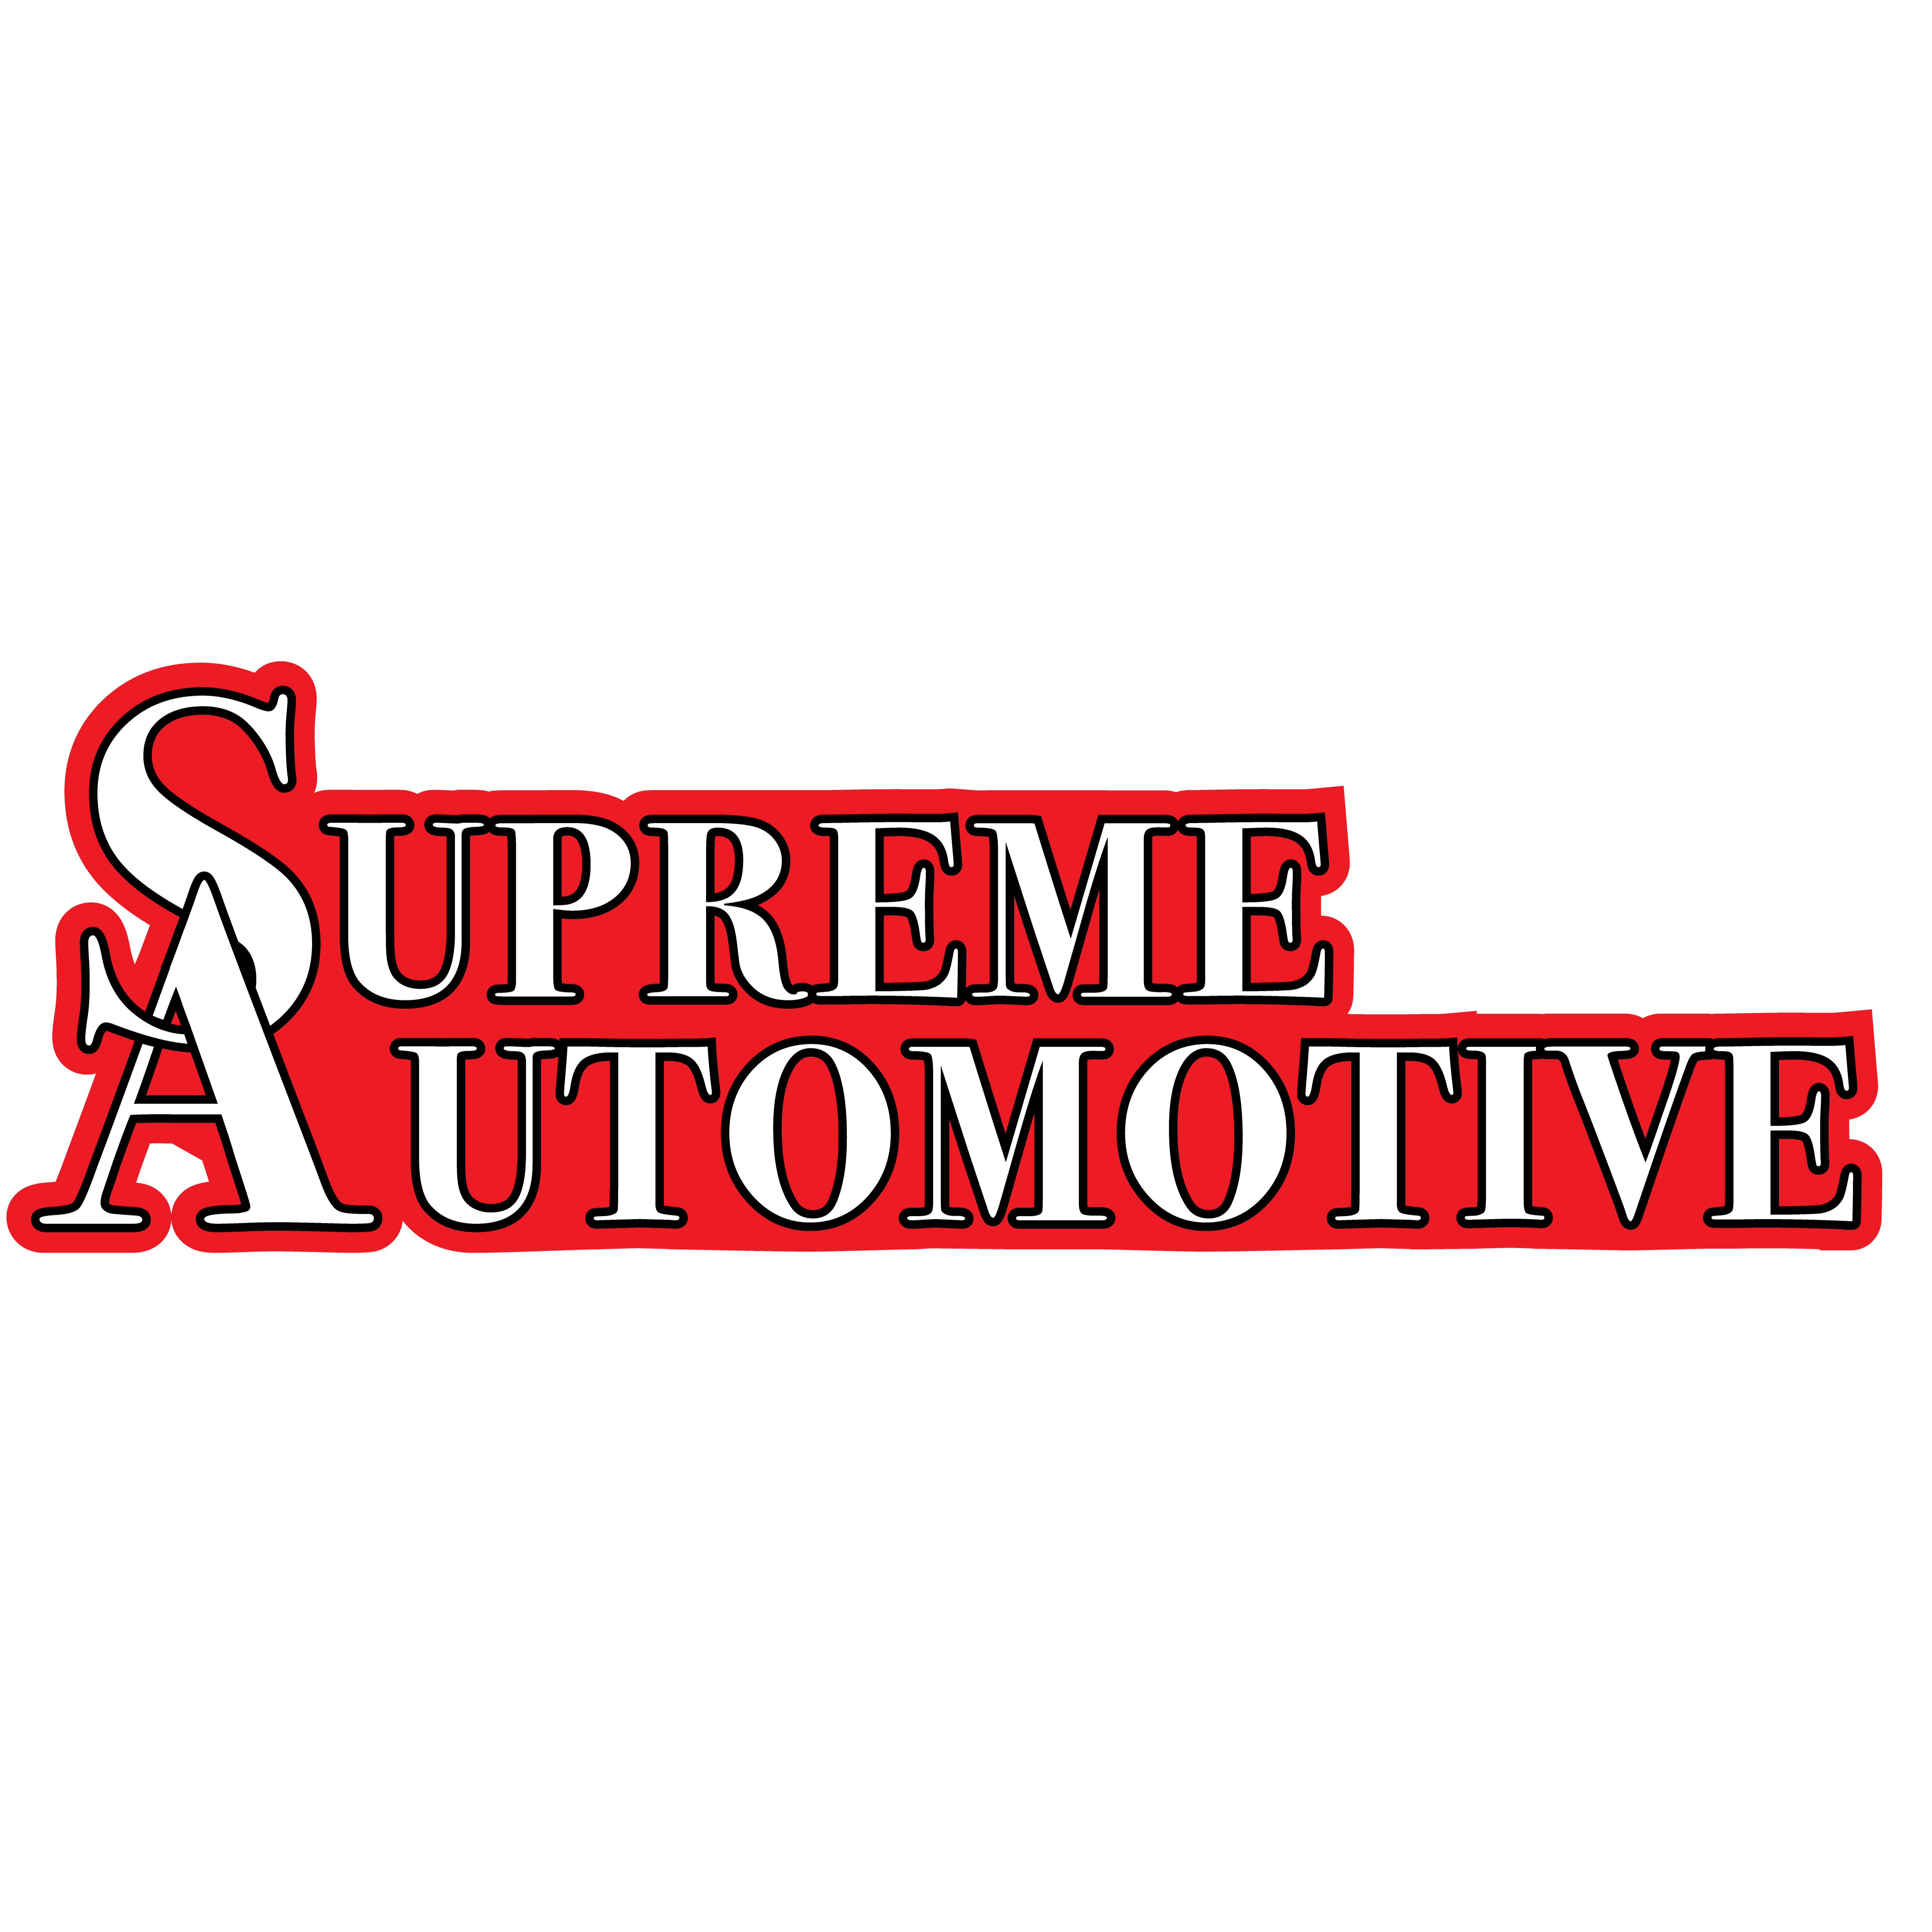 Supreme Automotive & Collision Center